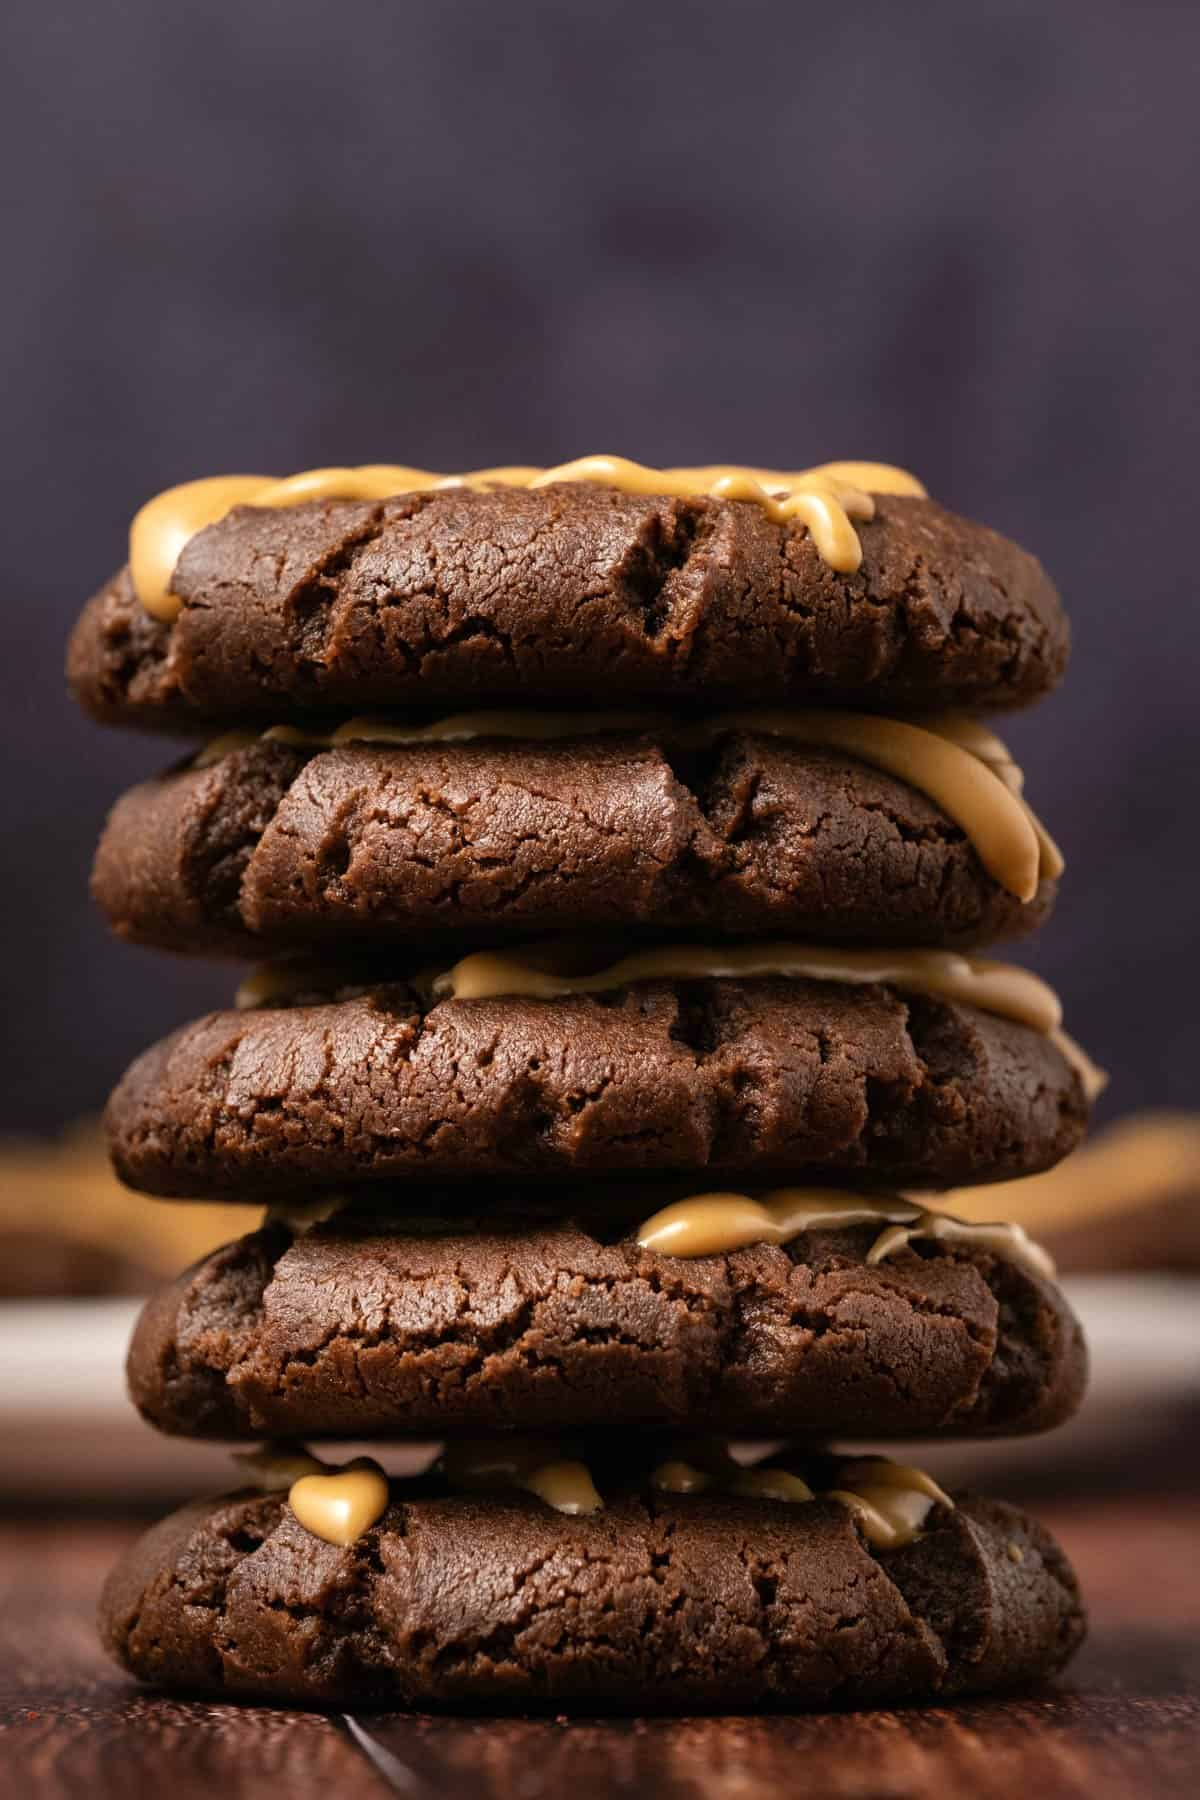 Chocolate peanut butter cookies in a stack.